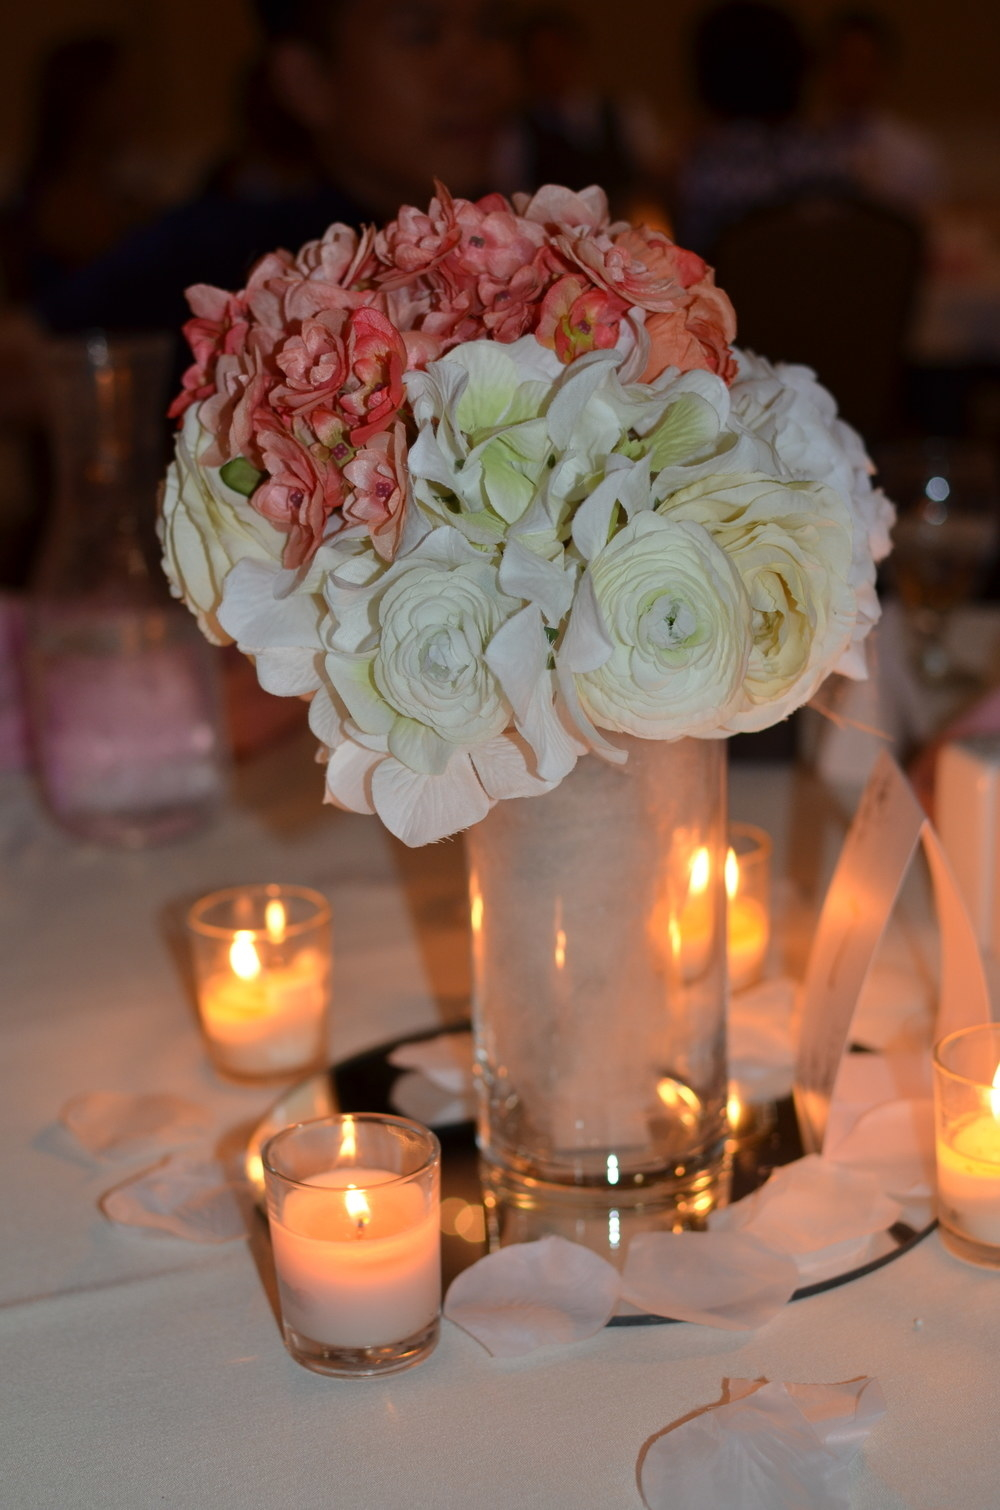 Centerpiece with flowers and candles